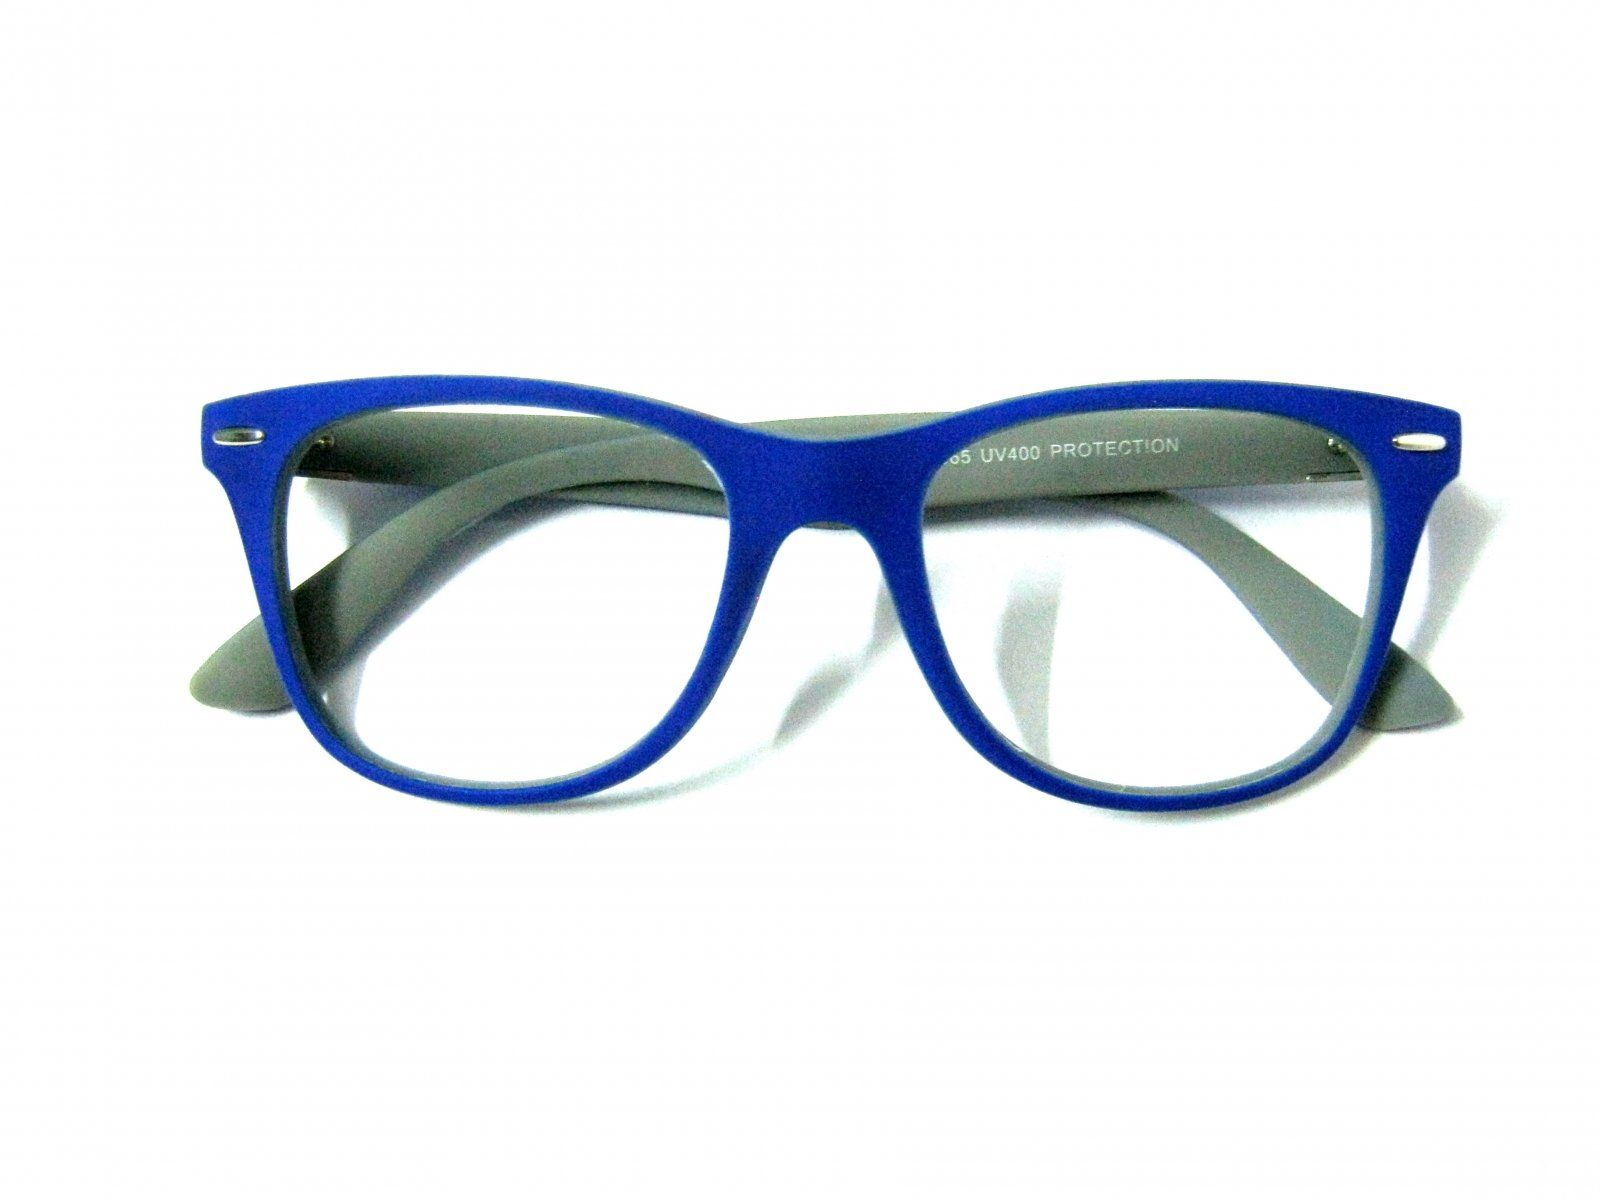 321c111842 Buy Wayfarers Blue Frame Eyeglasses at low prices in India only on  Winsant.com